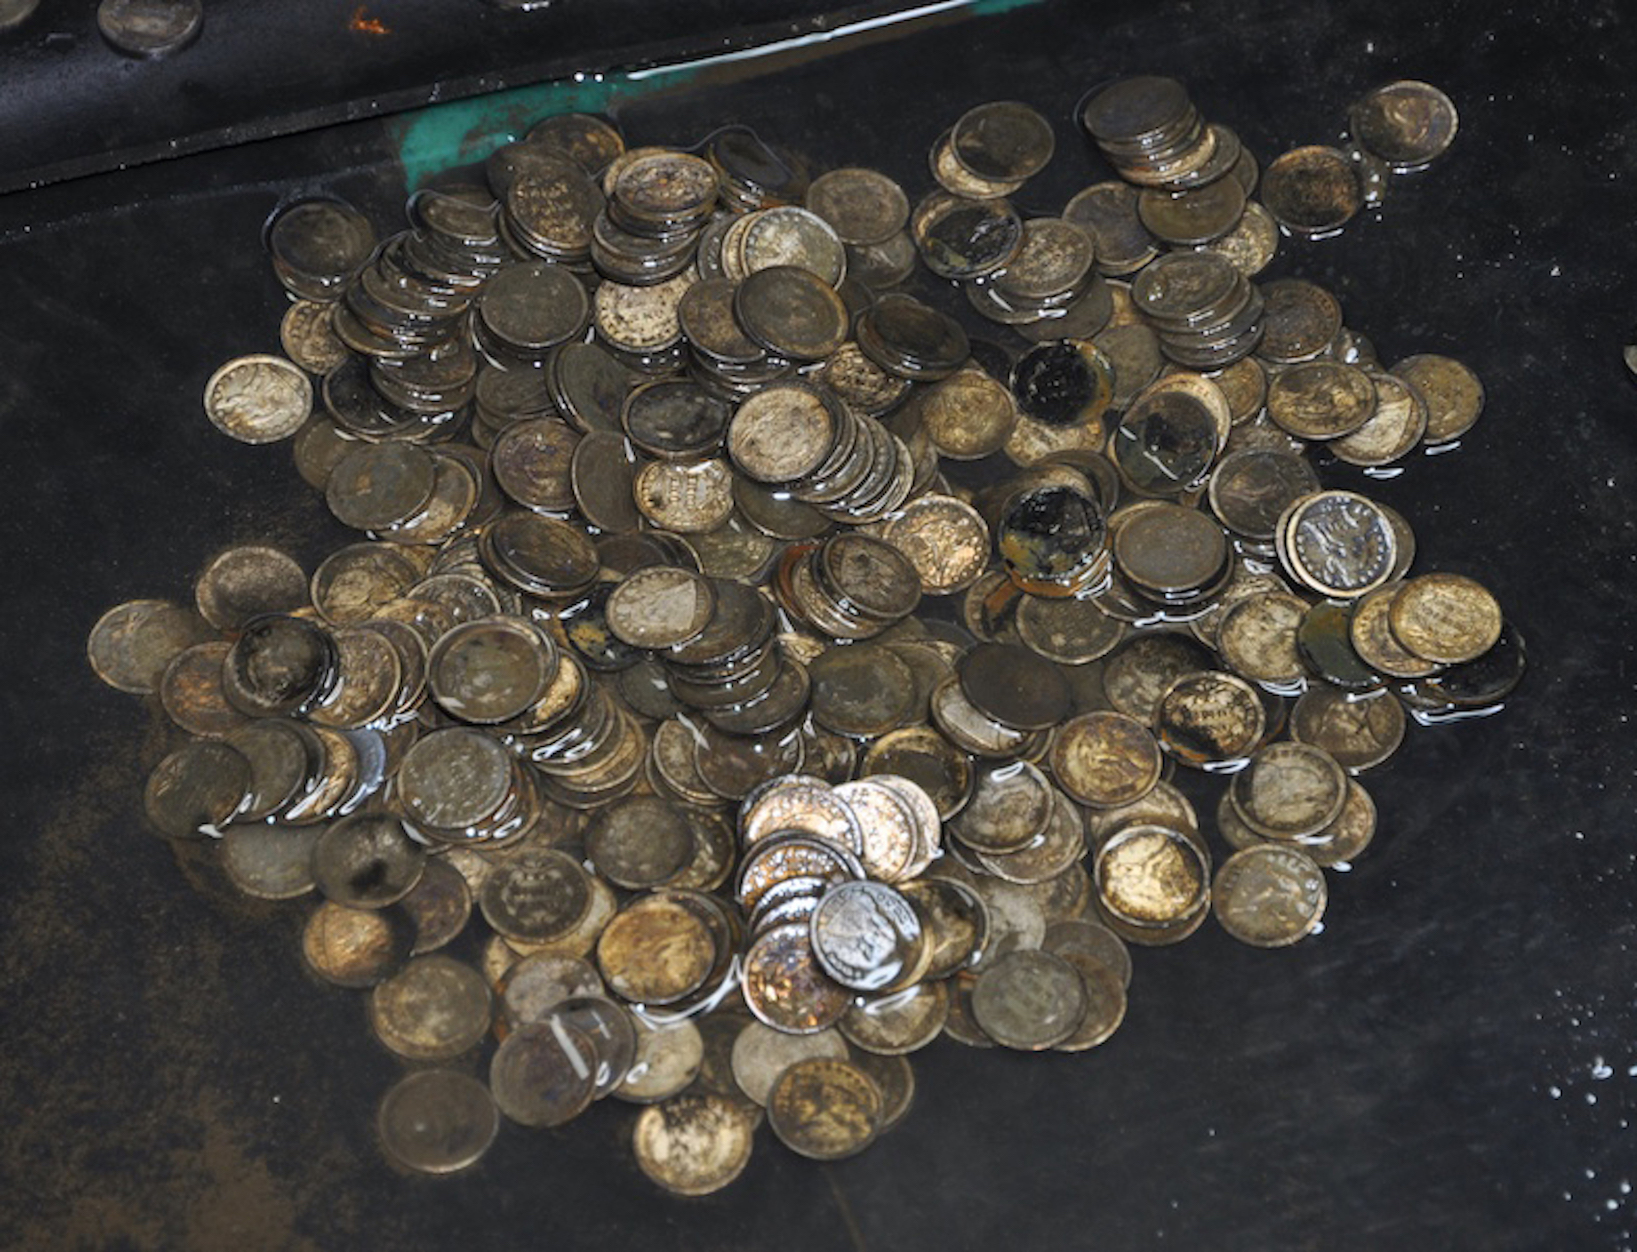 main image for Rare Coins Recovered From S.S. Central America Sunken Treasure